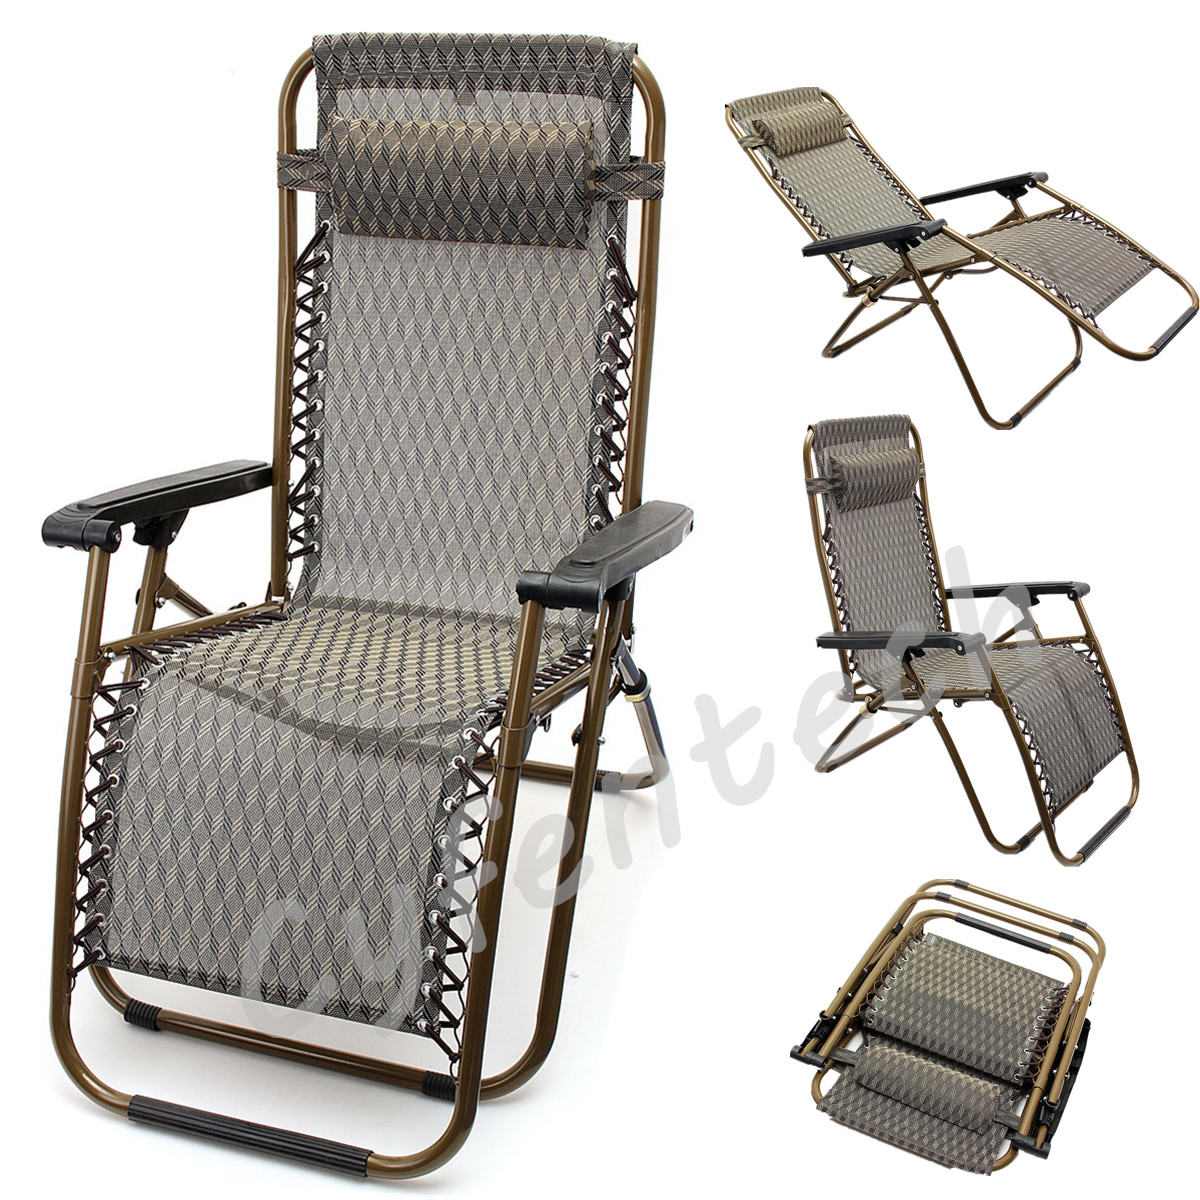 Zero Gravity Reclining Folding Garden Patio Lounger Lounge Chairs Recliner Relaxer Chair